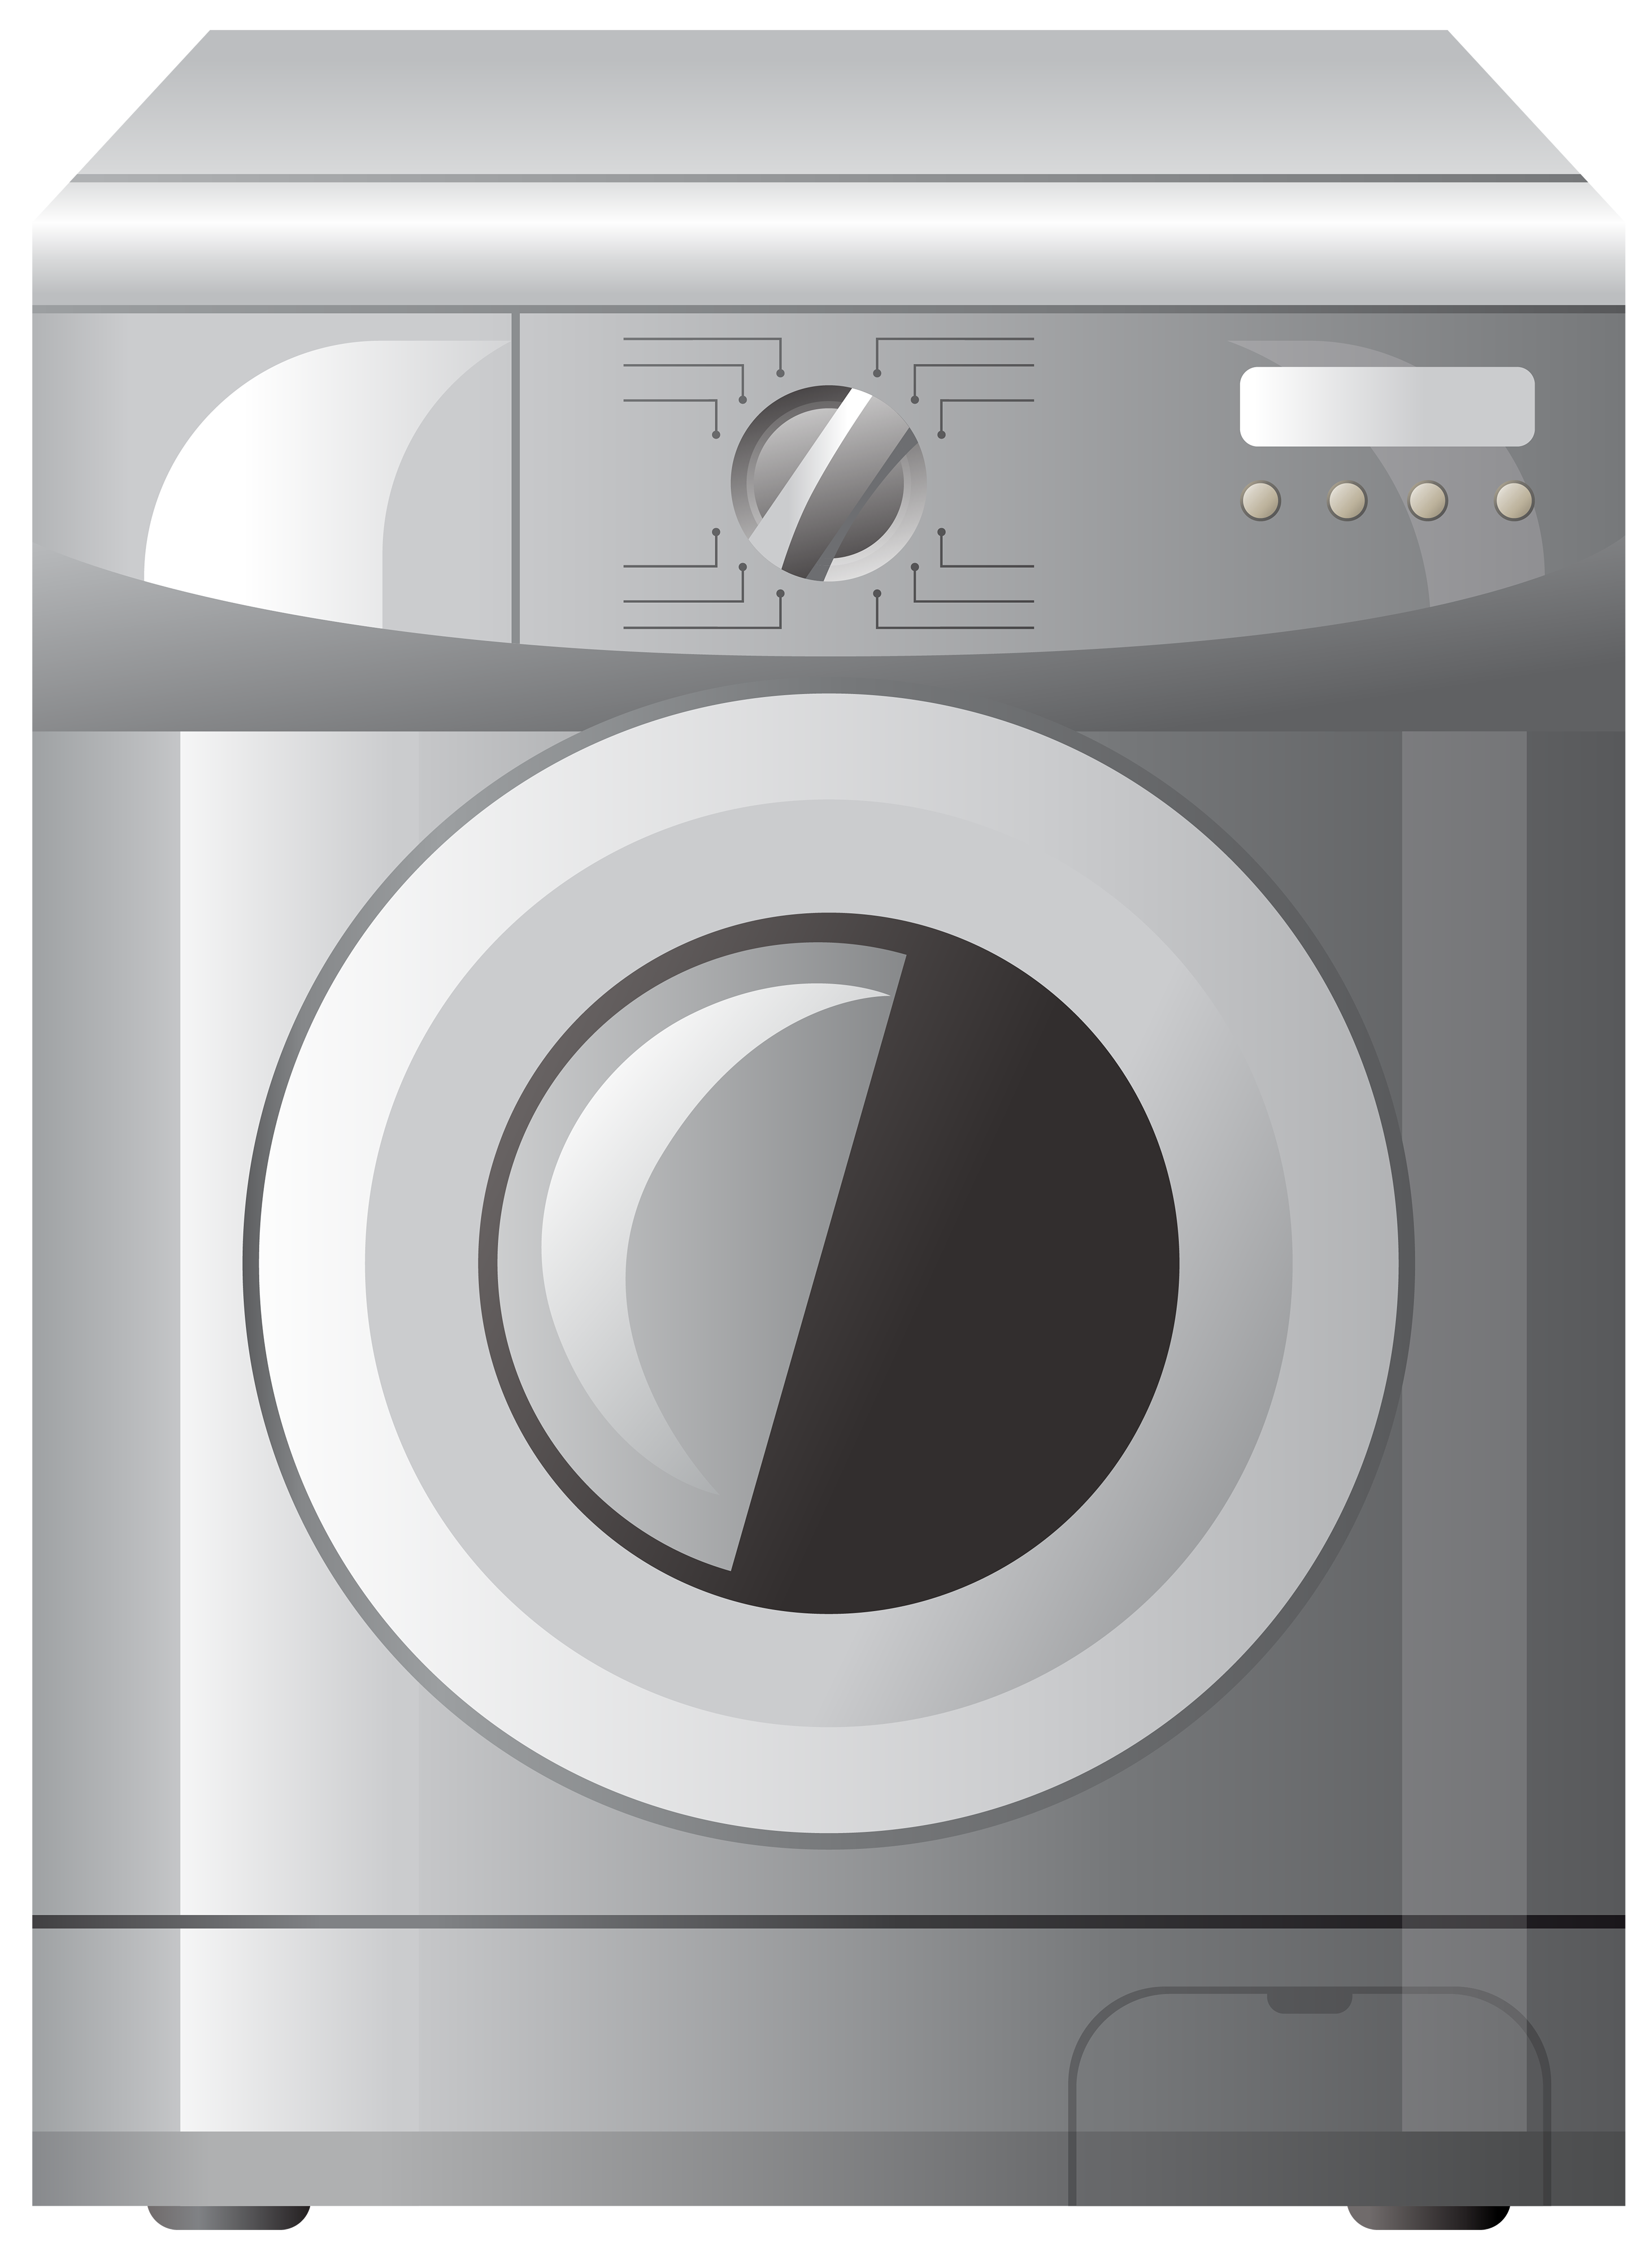 Washing machine clipart png clip art royalty free download Grey Washing Machine PNG Clipart - Best WEB Clipart clip art royalty free download